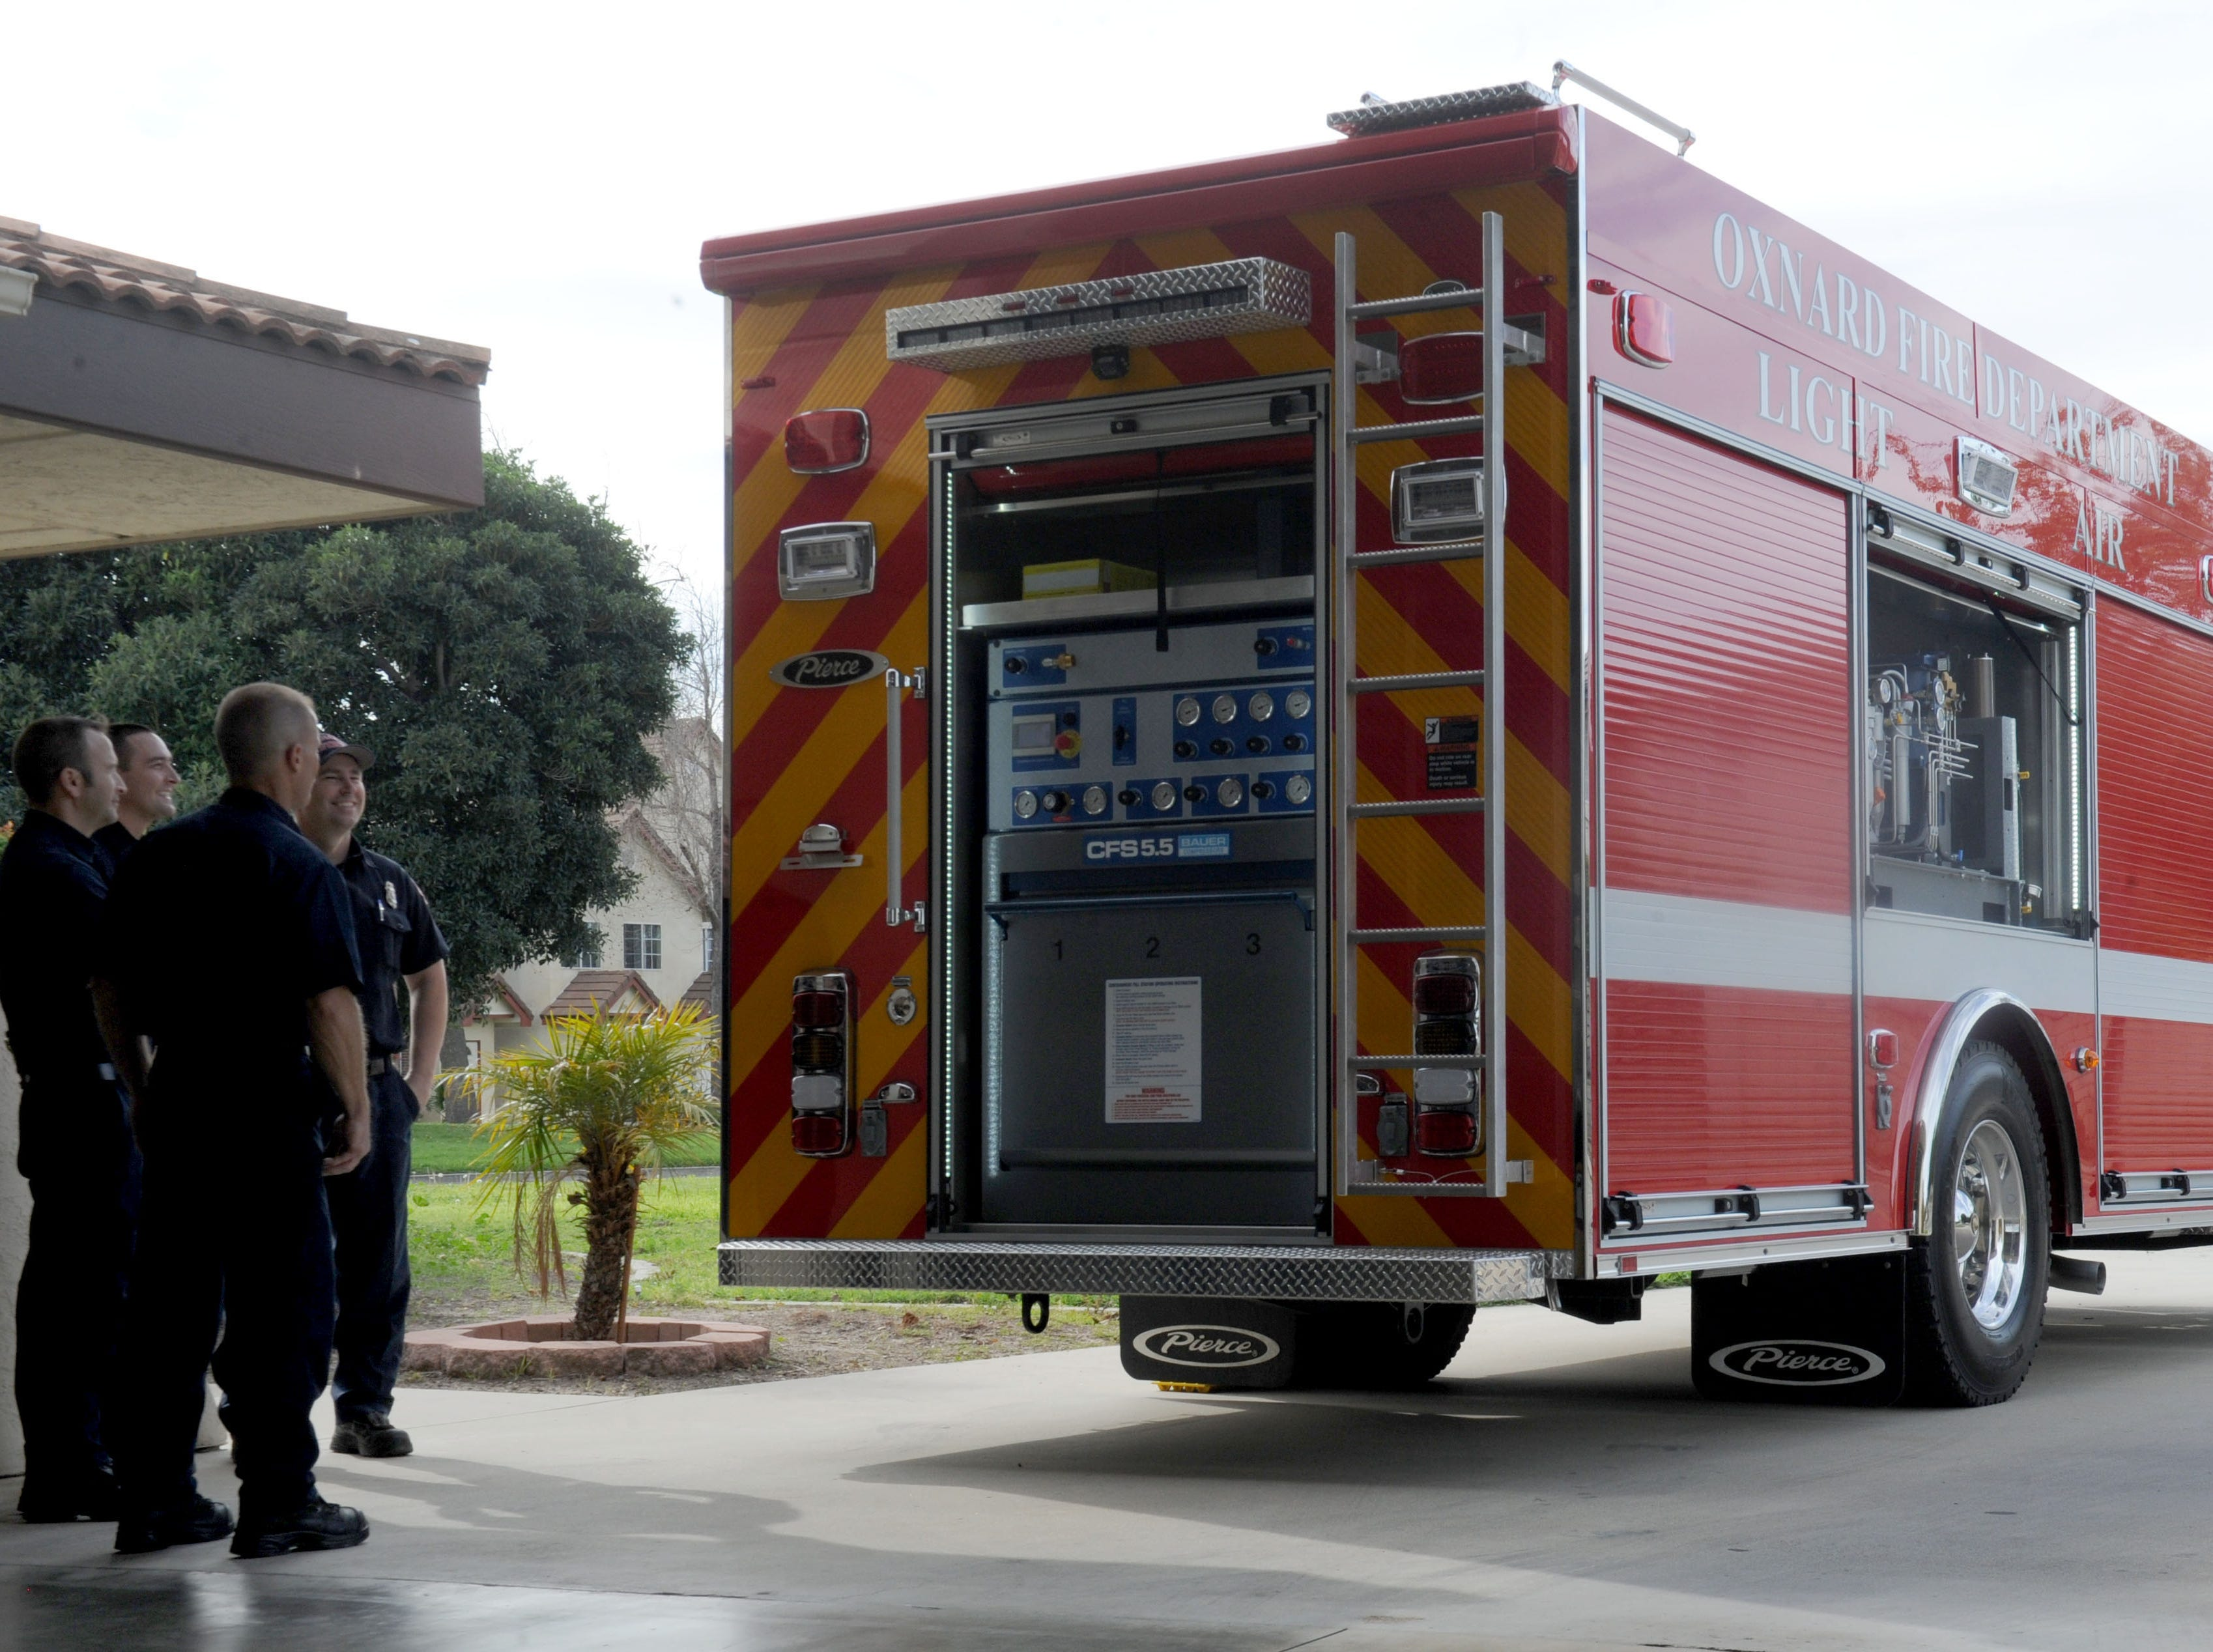 The Oxnard Fire Department's new unit, Light and Air 65, is based at Fire Station No. 5.